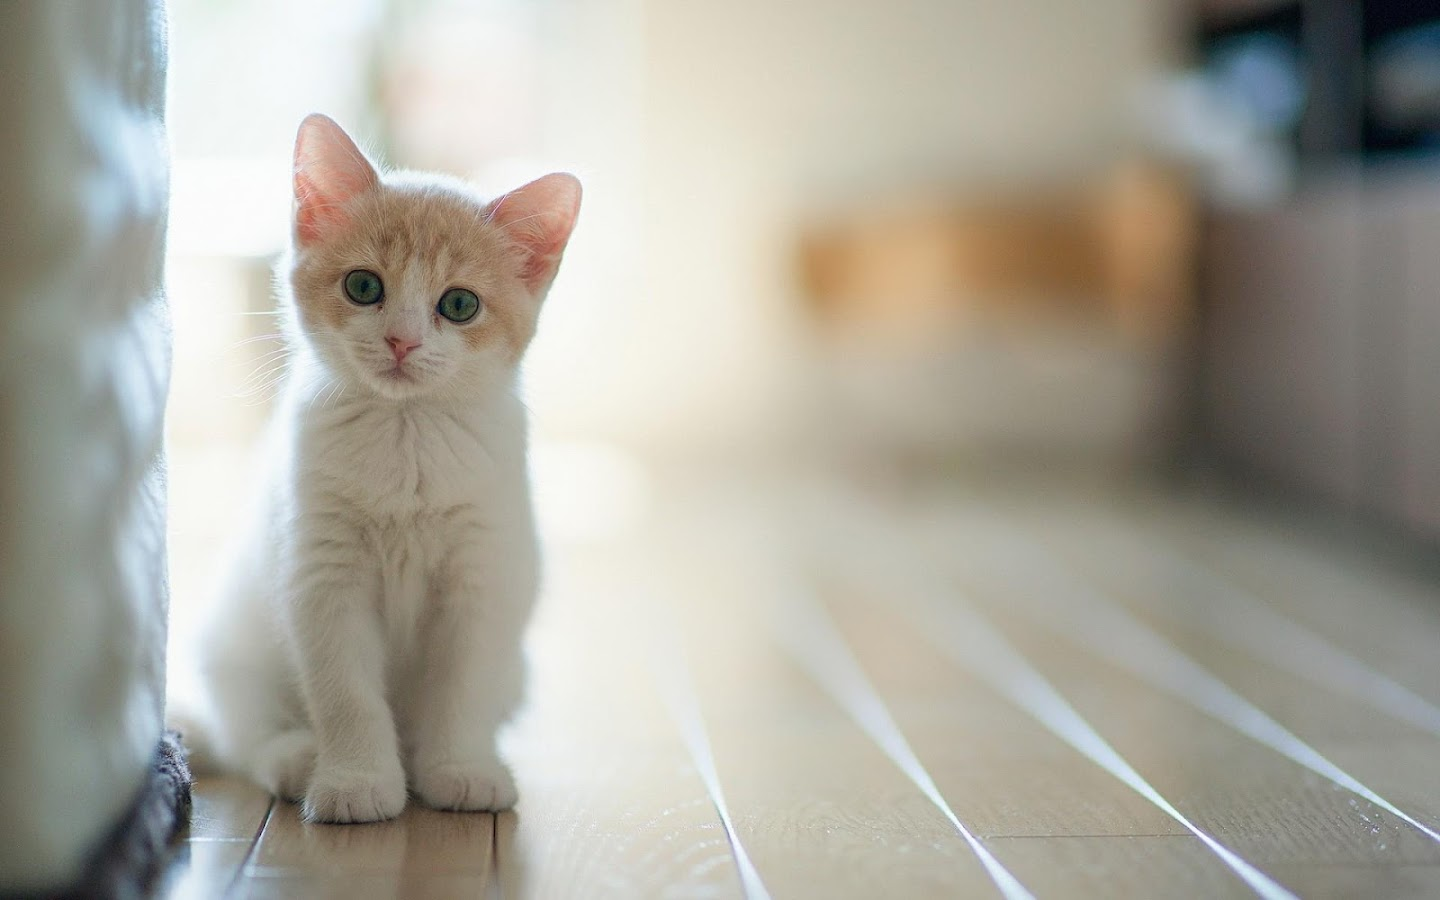 Baby Cat Wallpaper HD Android Apps on Google Play